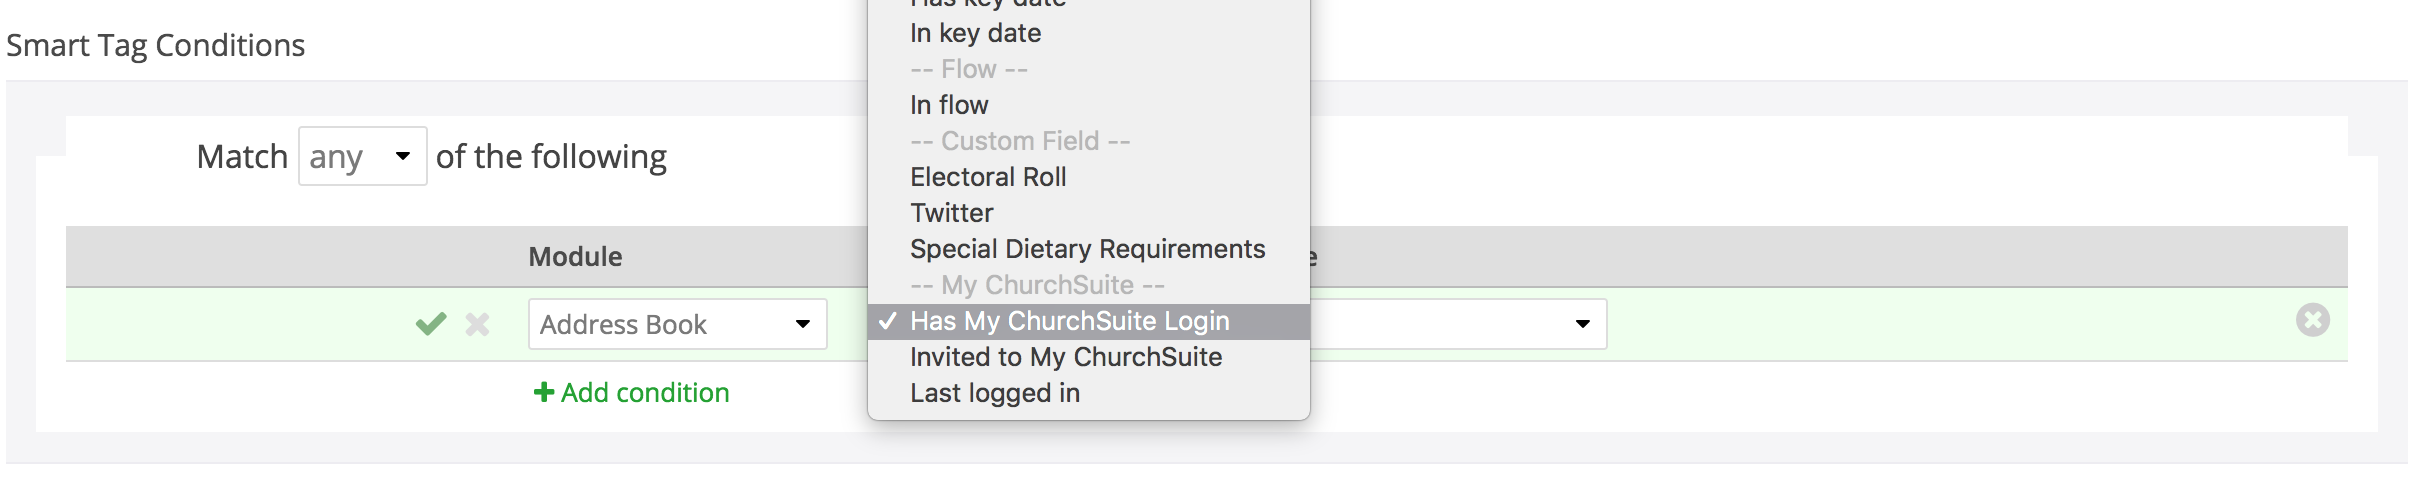 4 send my churchsuite invites to your church members churchsuite usage of your church members when using a smart tag located in the address book module conditions are options for has my churchsuite login stopboris Images